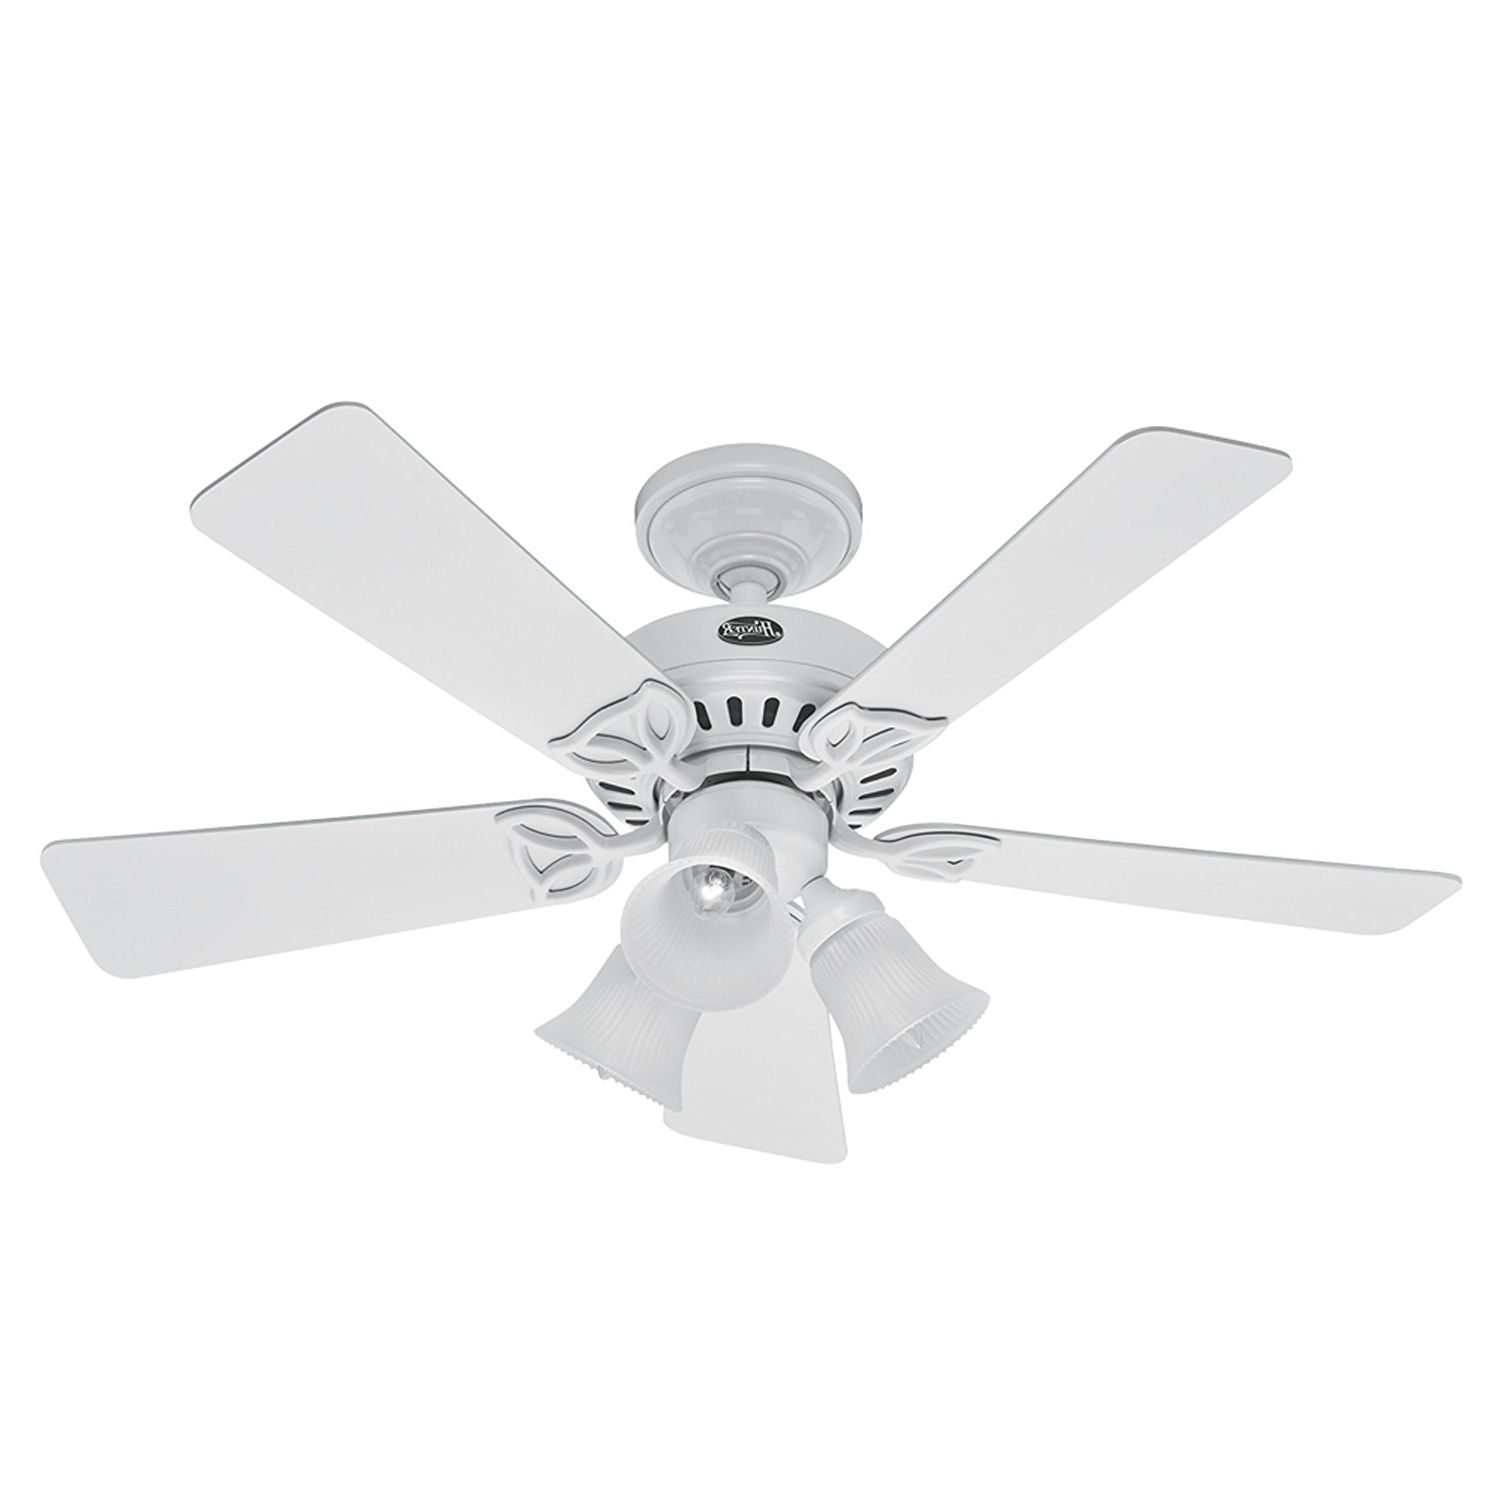 Famous Hunter Outdoor Ceiling Fans With White Lights Inside Ceiling Fan: Appealing Hunter Ceiling Fans Ideas Ceiling Fans (View 7 of 20)